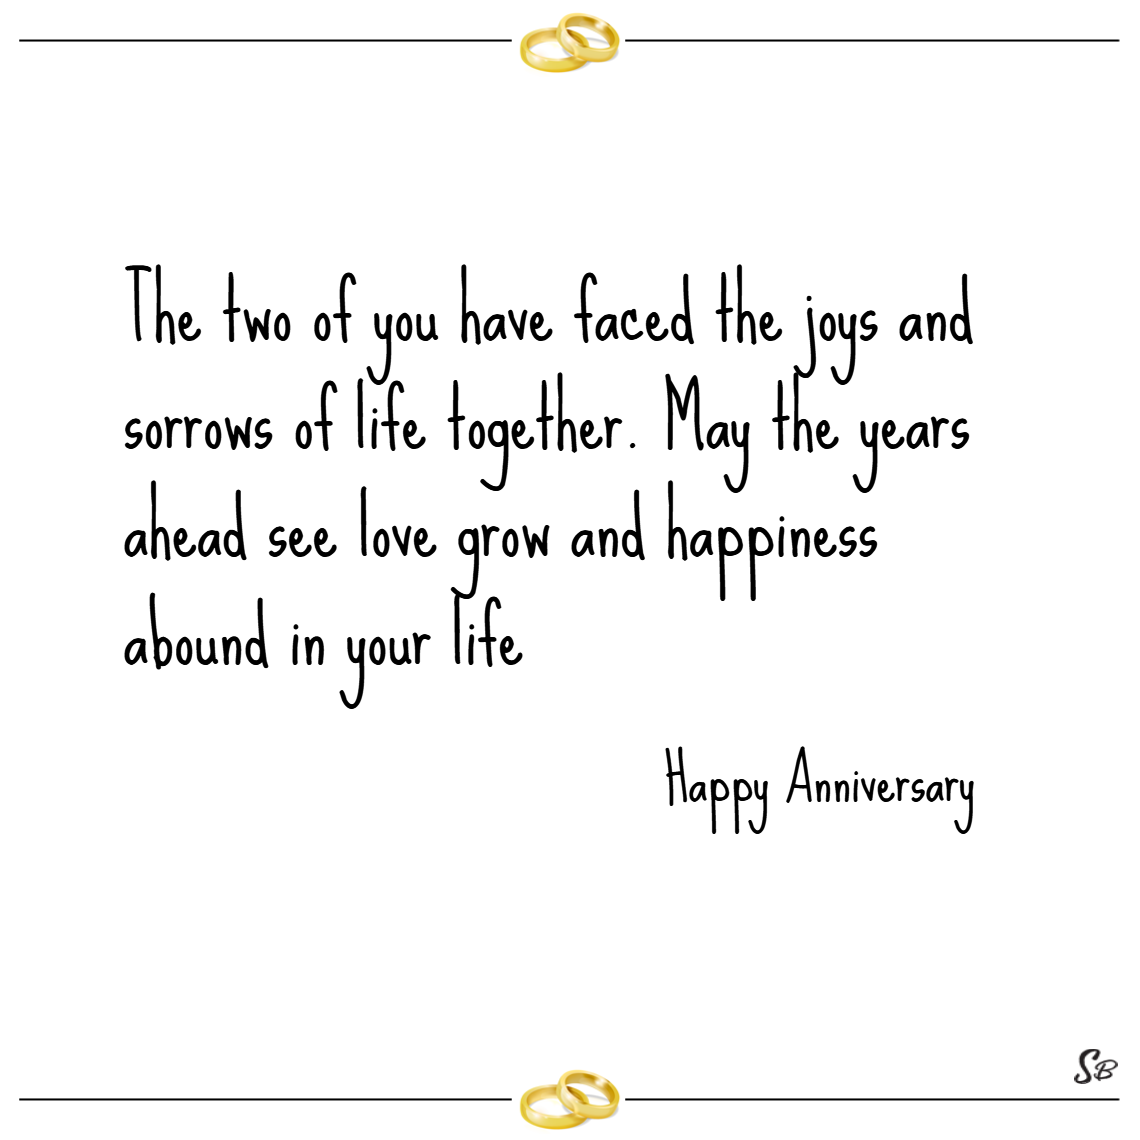 The two of you have faced the joys and sorrows of life together. may the years ahead see love grow and happiness abound in your life